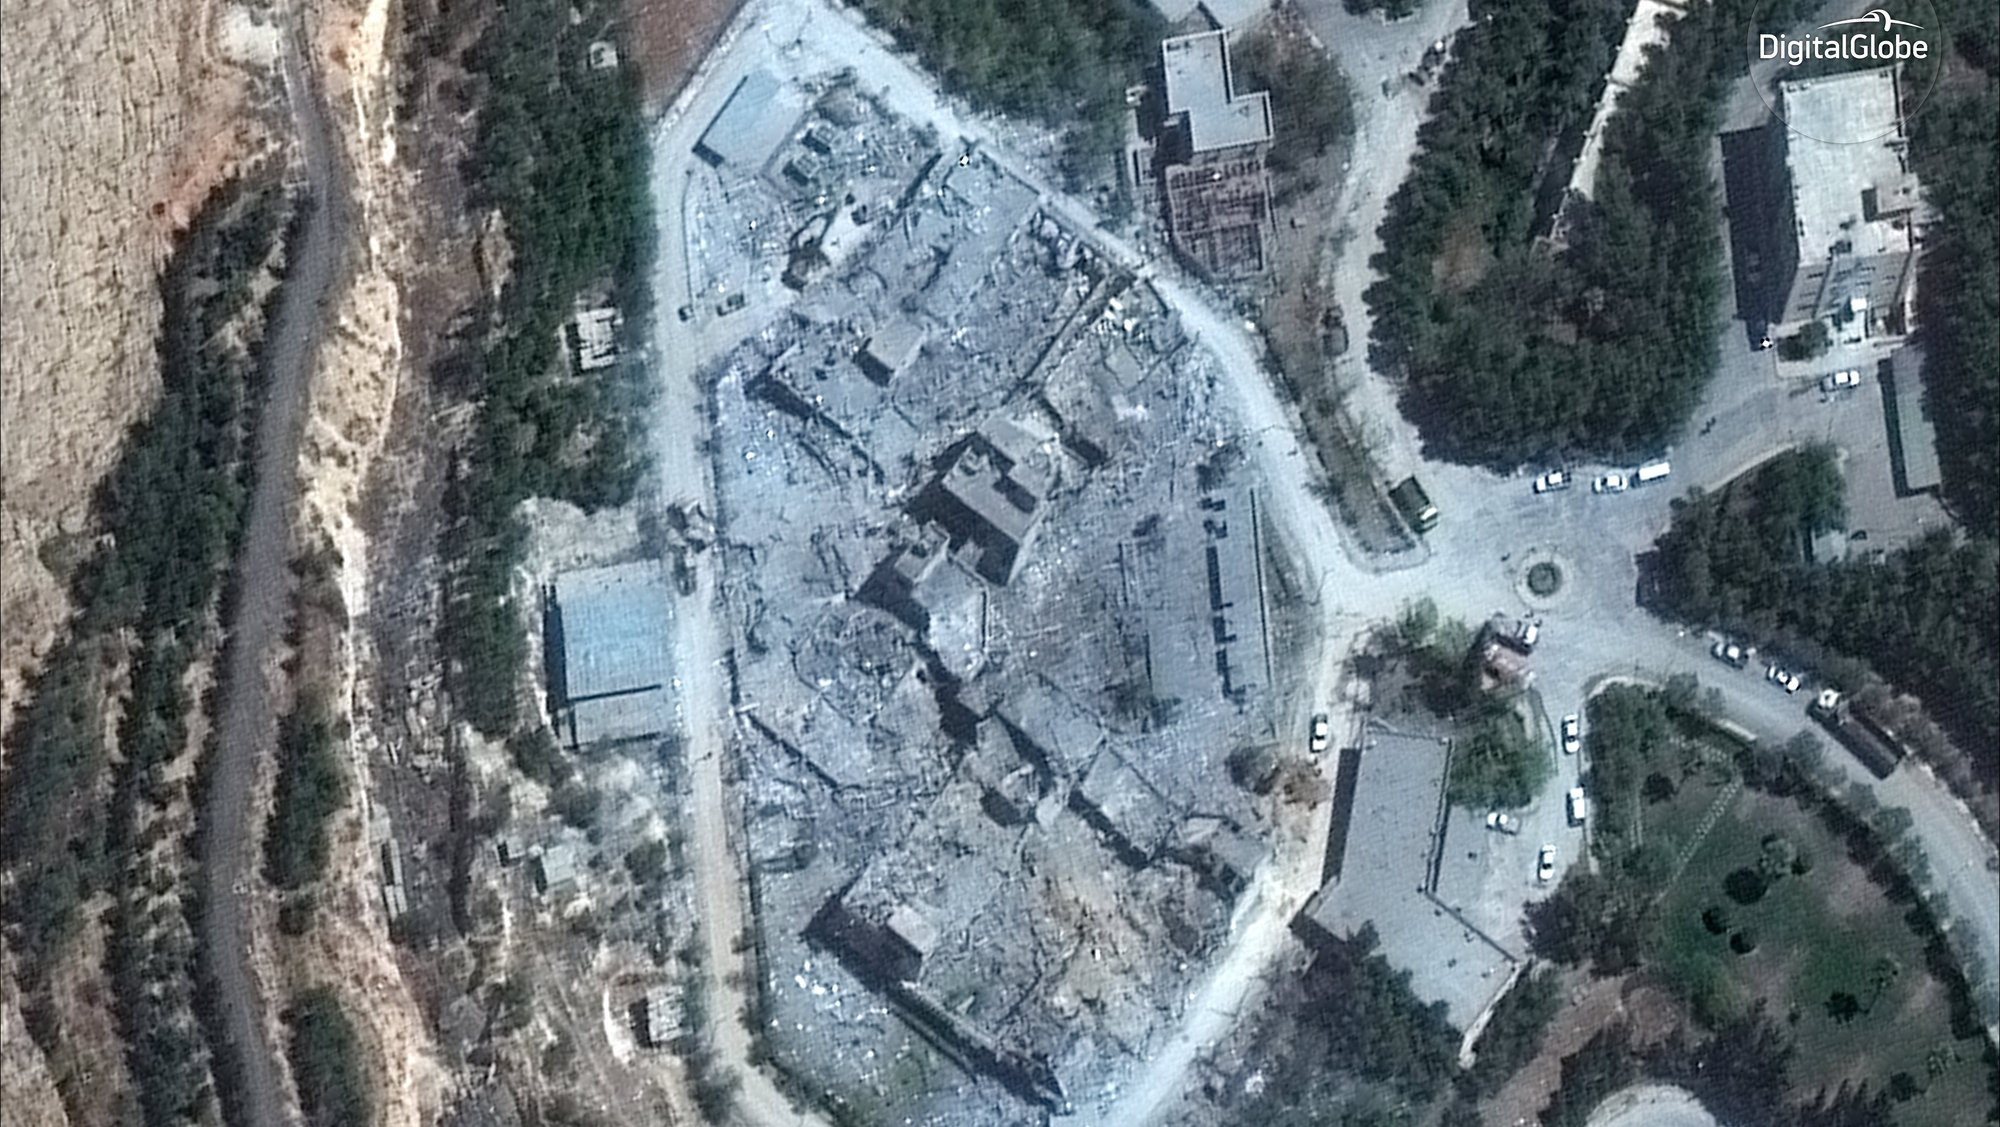 epa06672550 A handout satellite photo made available by 15 April 2018 by DigitalGlobe, showing the Barzah Research and Development Center in Damascus, Syria, after the attack by coalition forces missiles and rockets early 14 April 2018. US, France, and Britain launched strikes against Syria on 14 April 2018 in response to Syria's suspected chemical weapons attack.  EPA/DIGITALGLOBE HANDOUT (Satellite image © 2018 DigitalGlobe, a Maxar company.) HANDOUT EDITORIAL USE ONLY/NO SALES